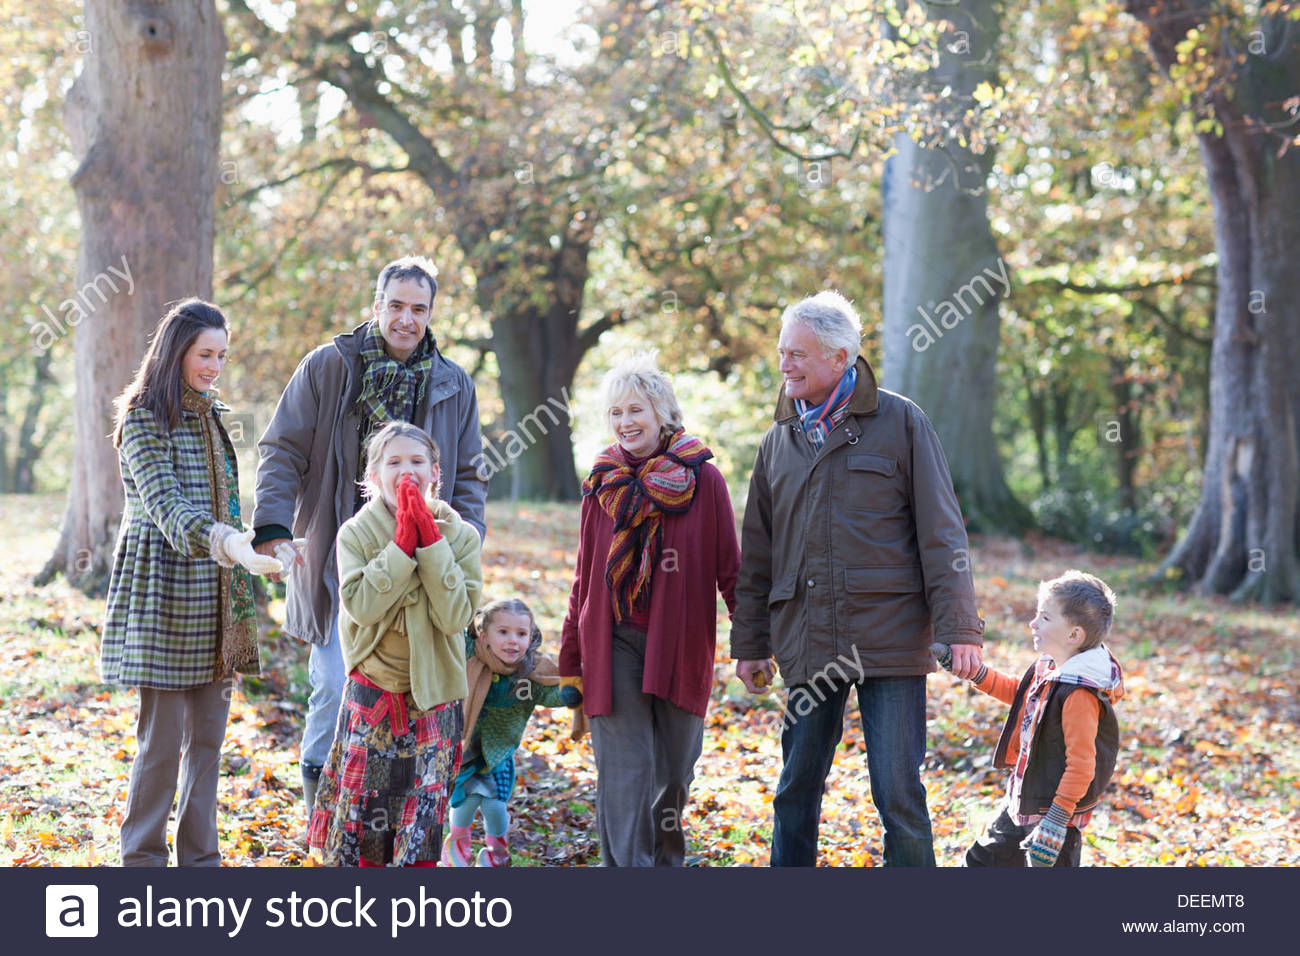 Extended family holding hands and walking in park - Stock Image